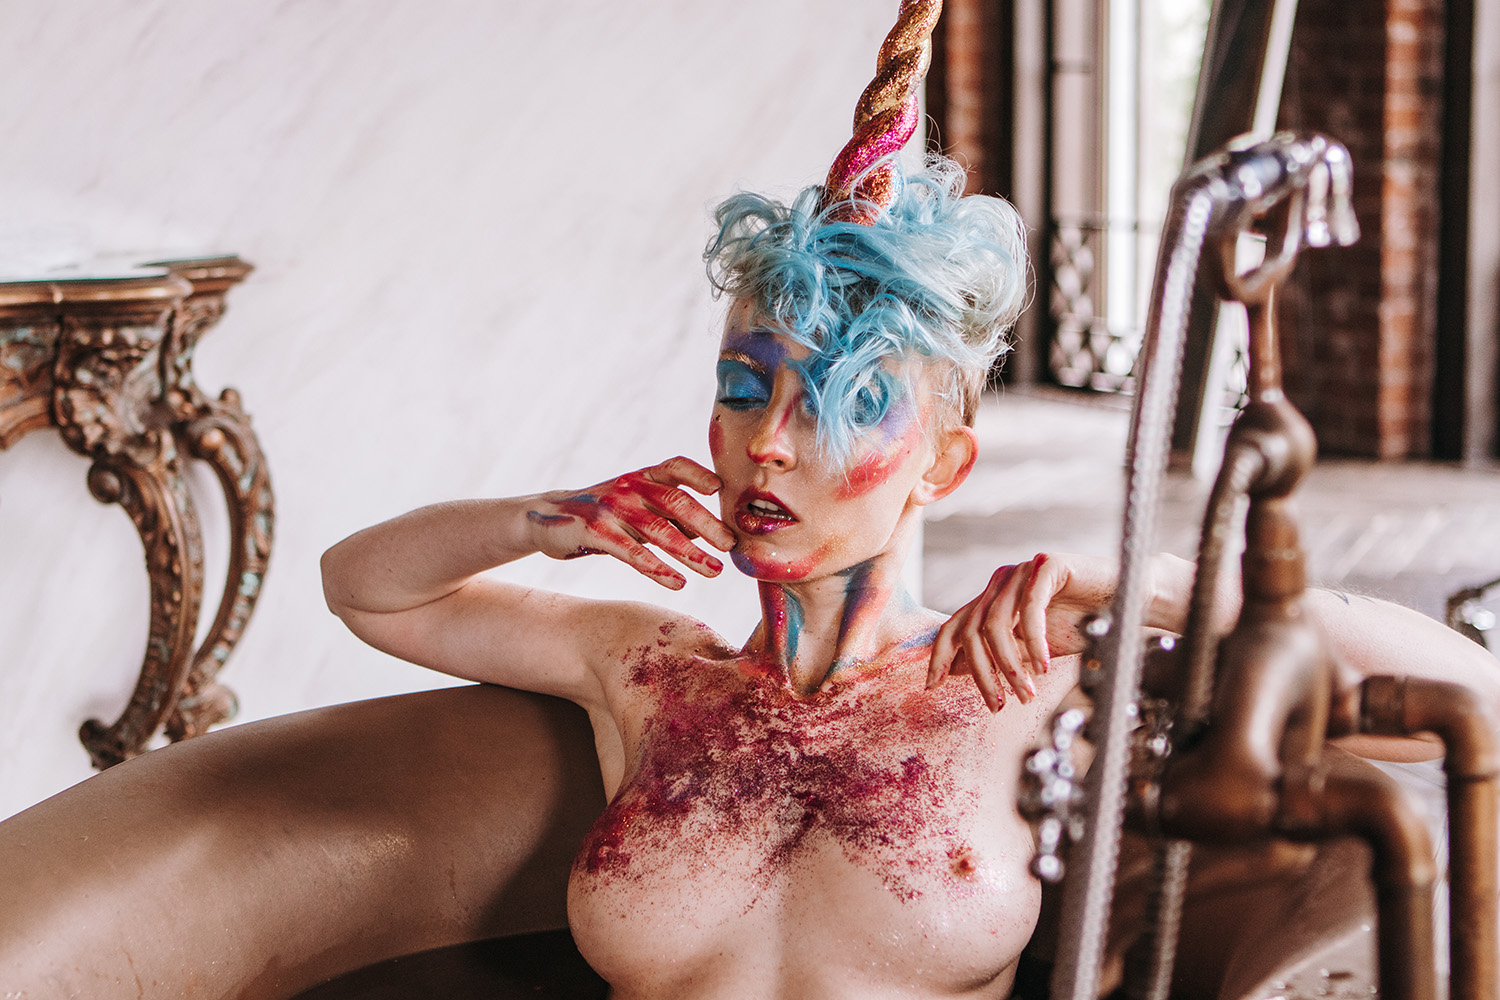 Nude Showcase – Unicorn